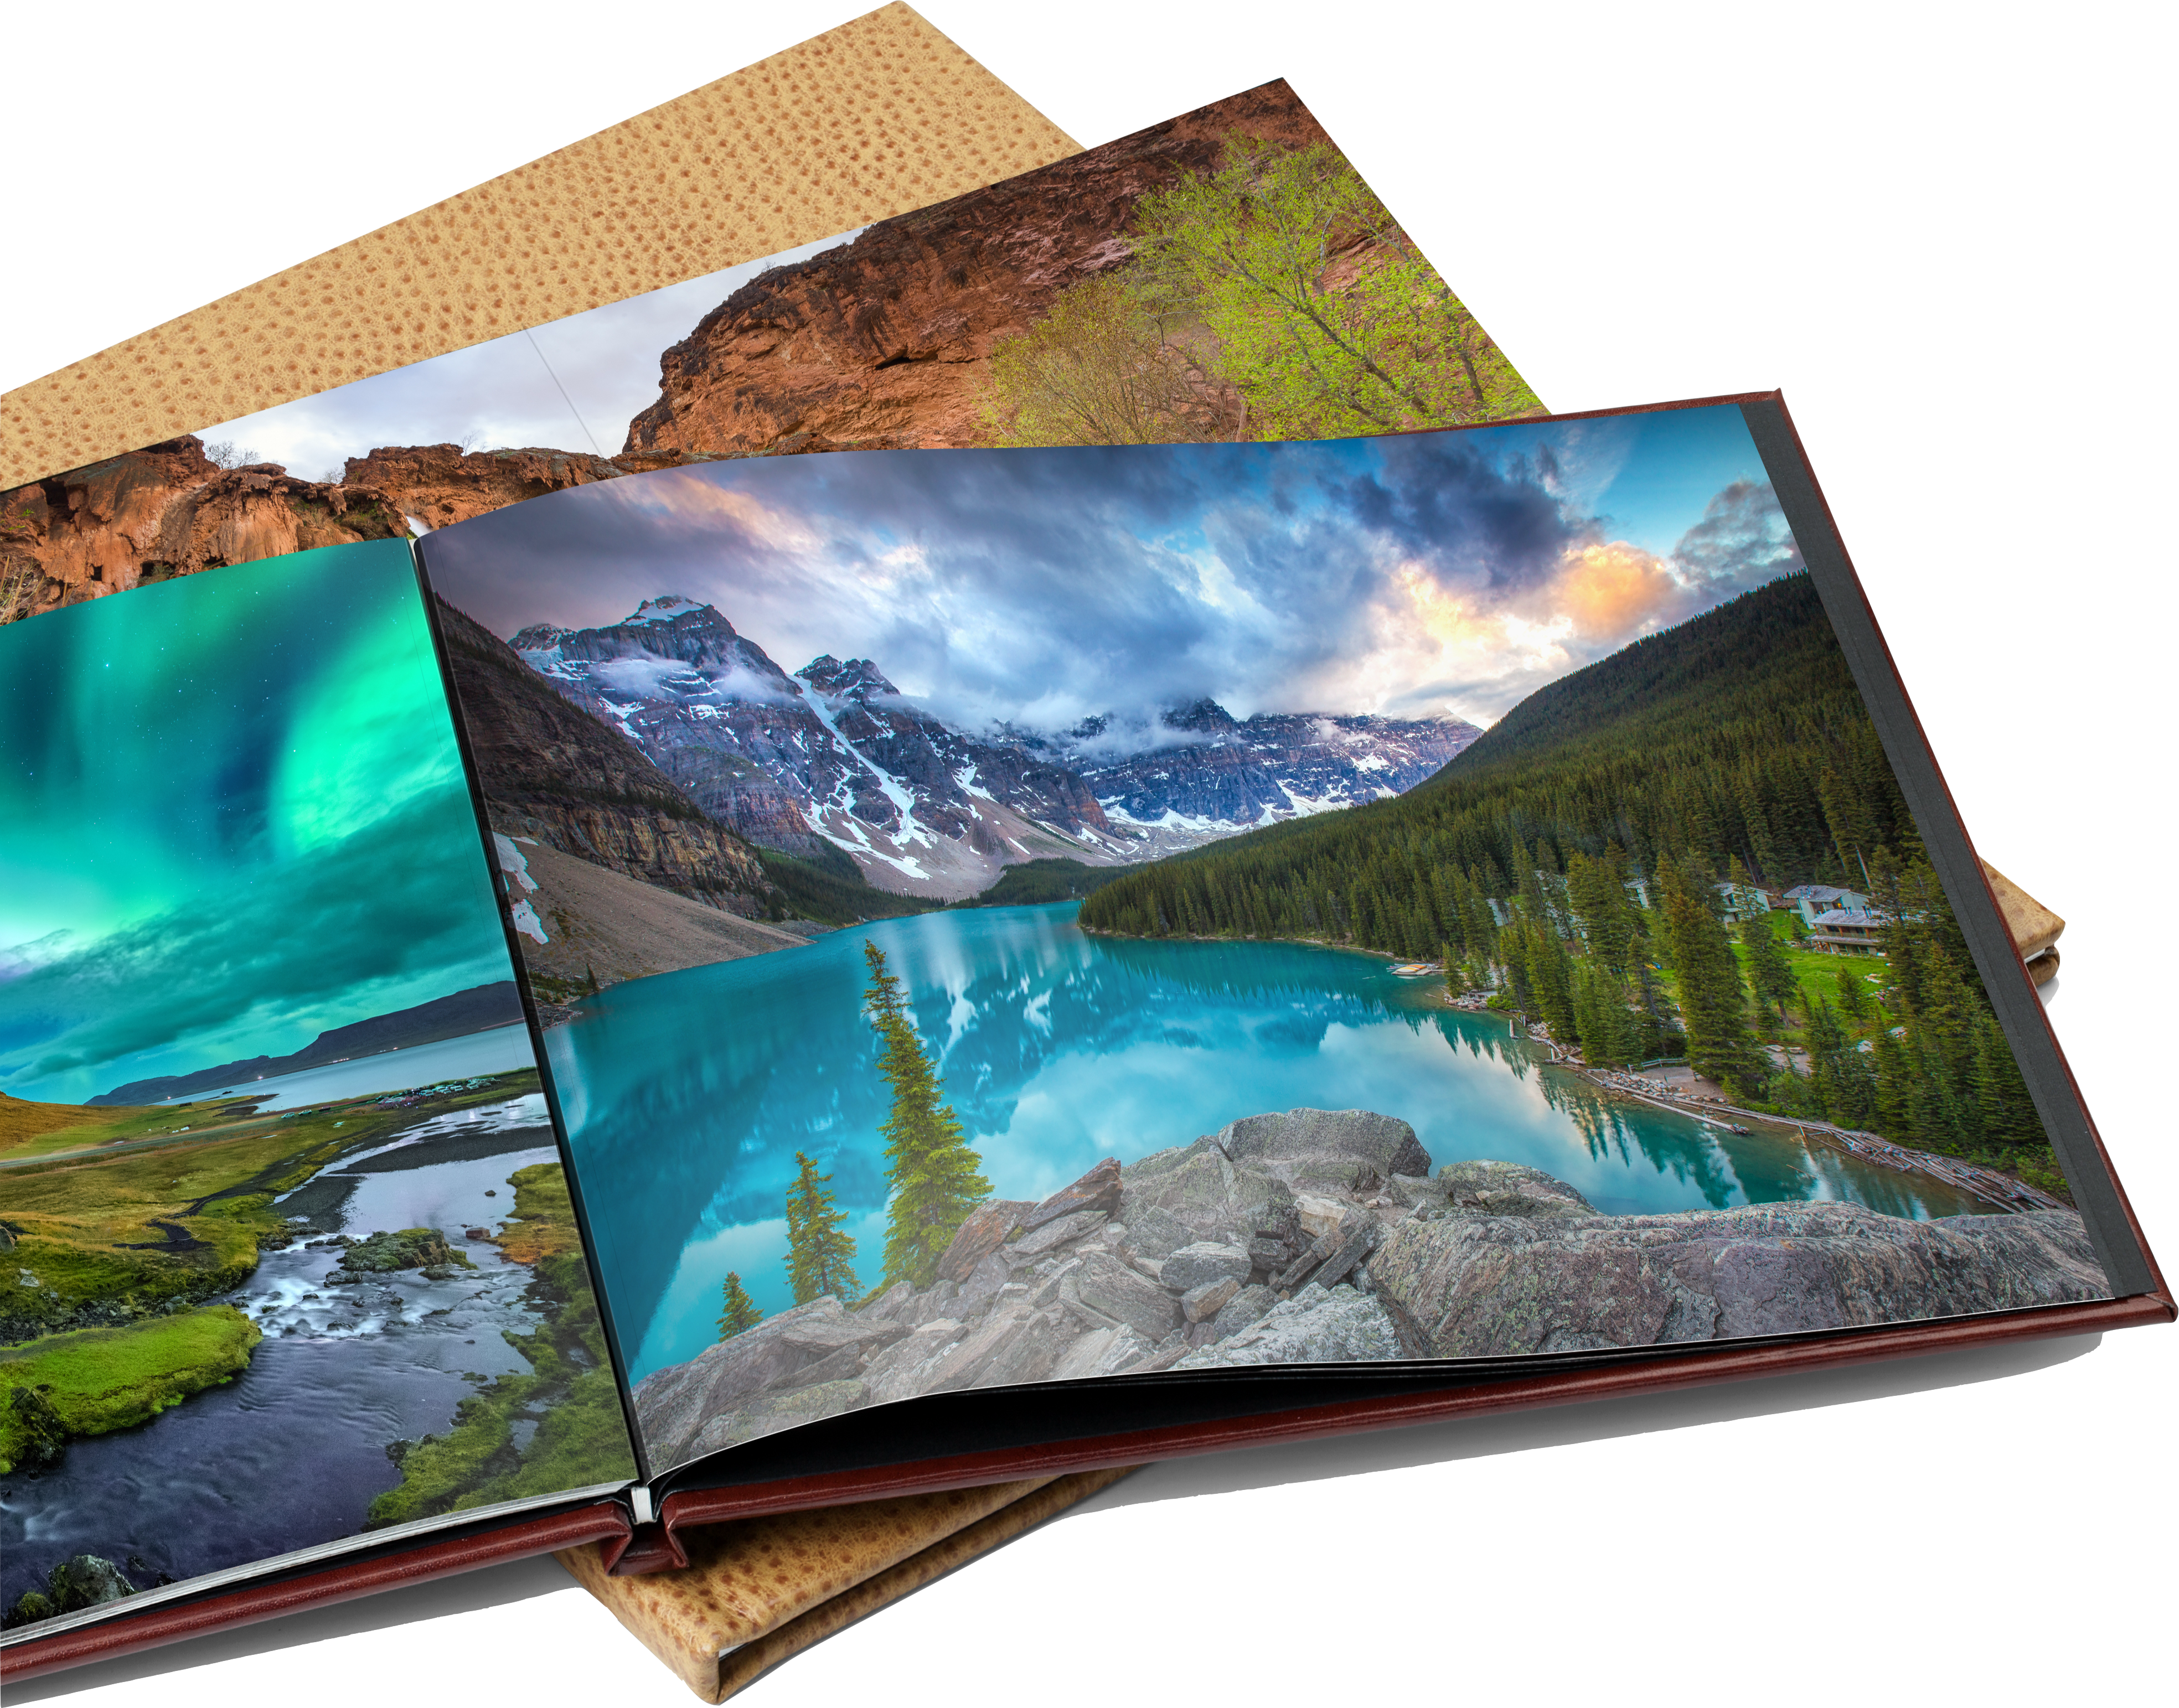 Hardcover, high-quality Bay Photo photo book featuring winners and all finalists